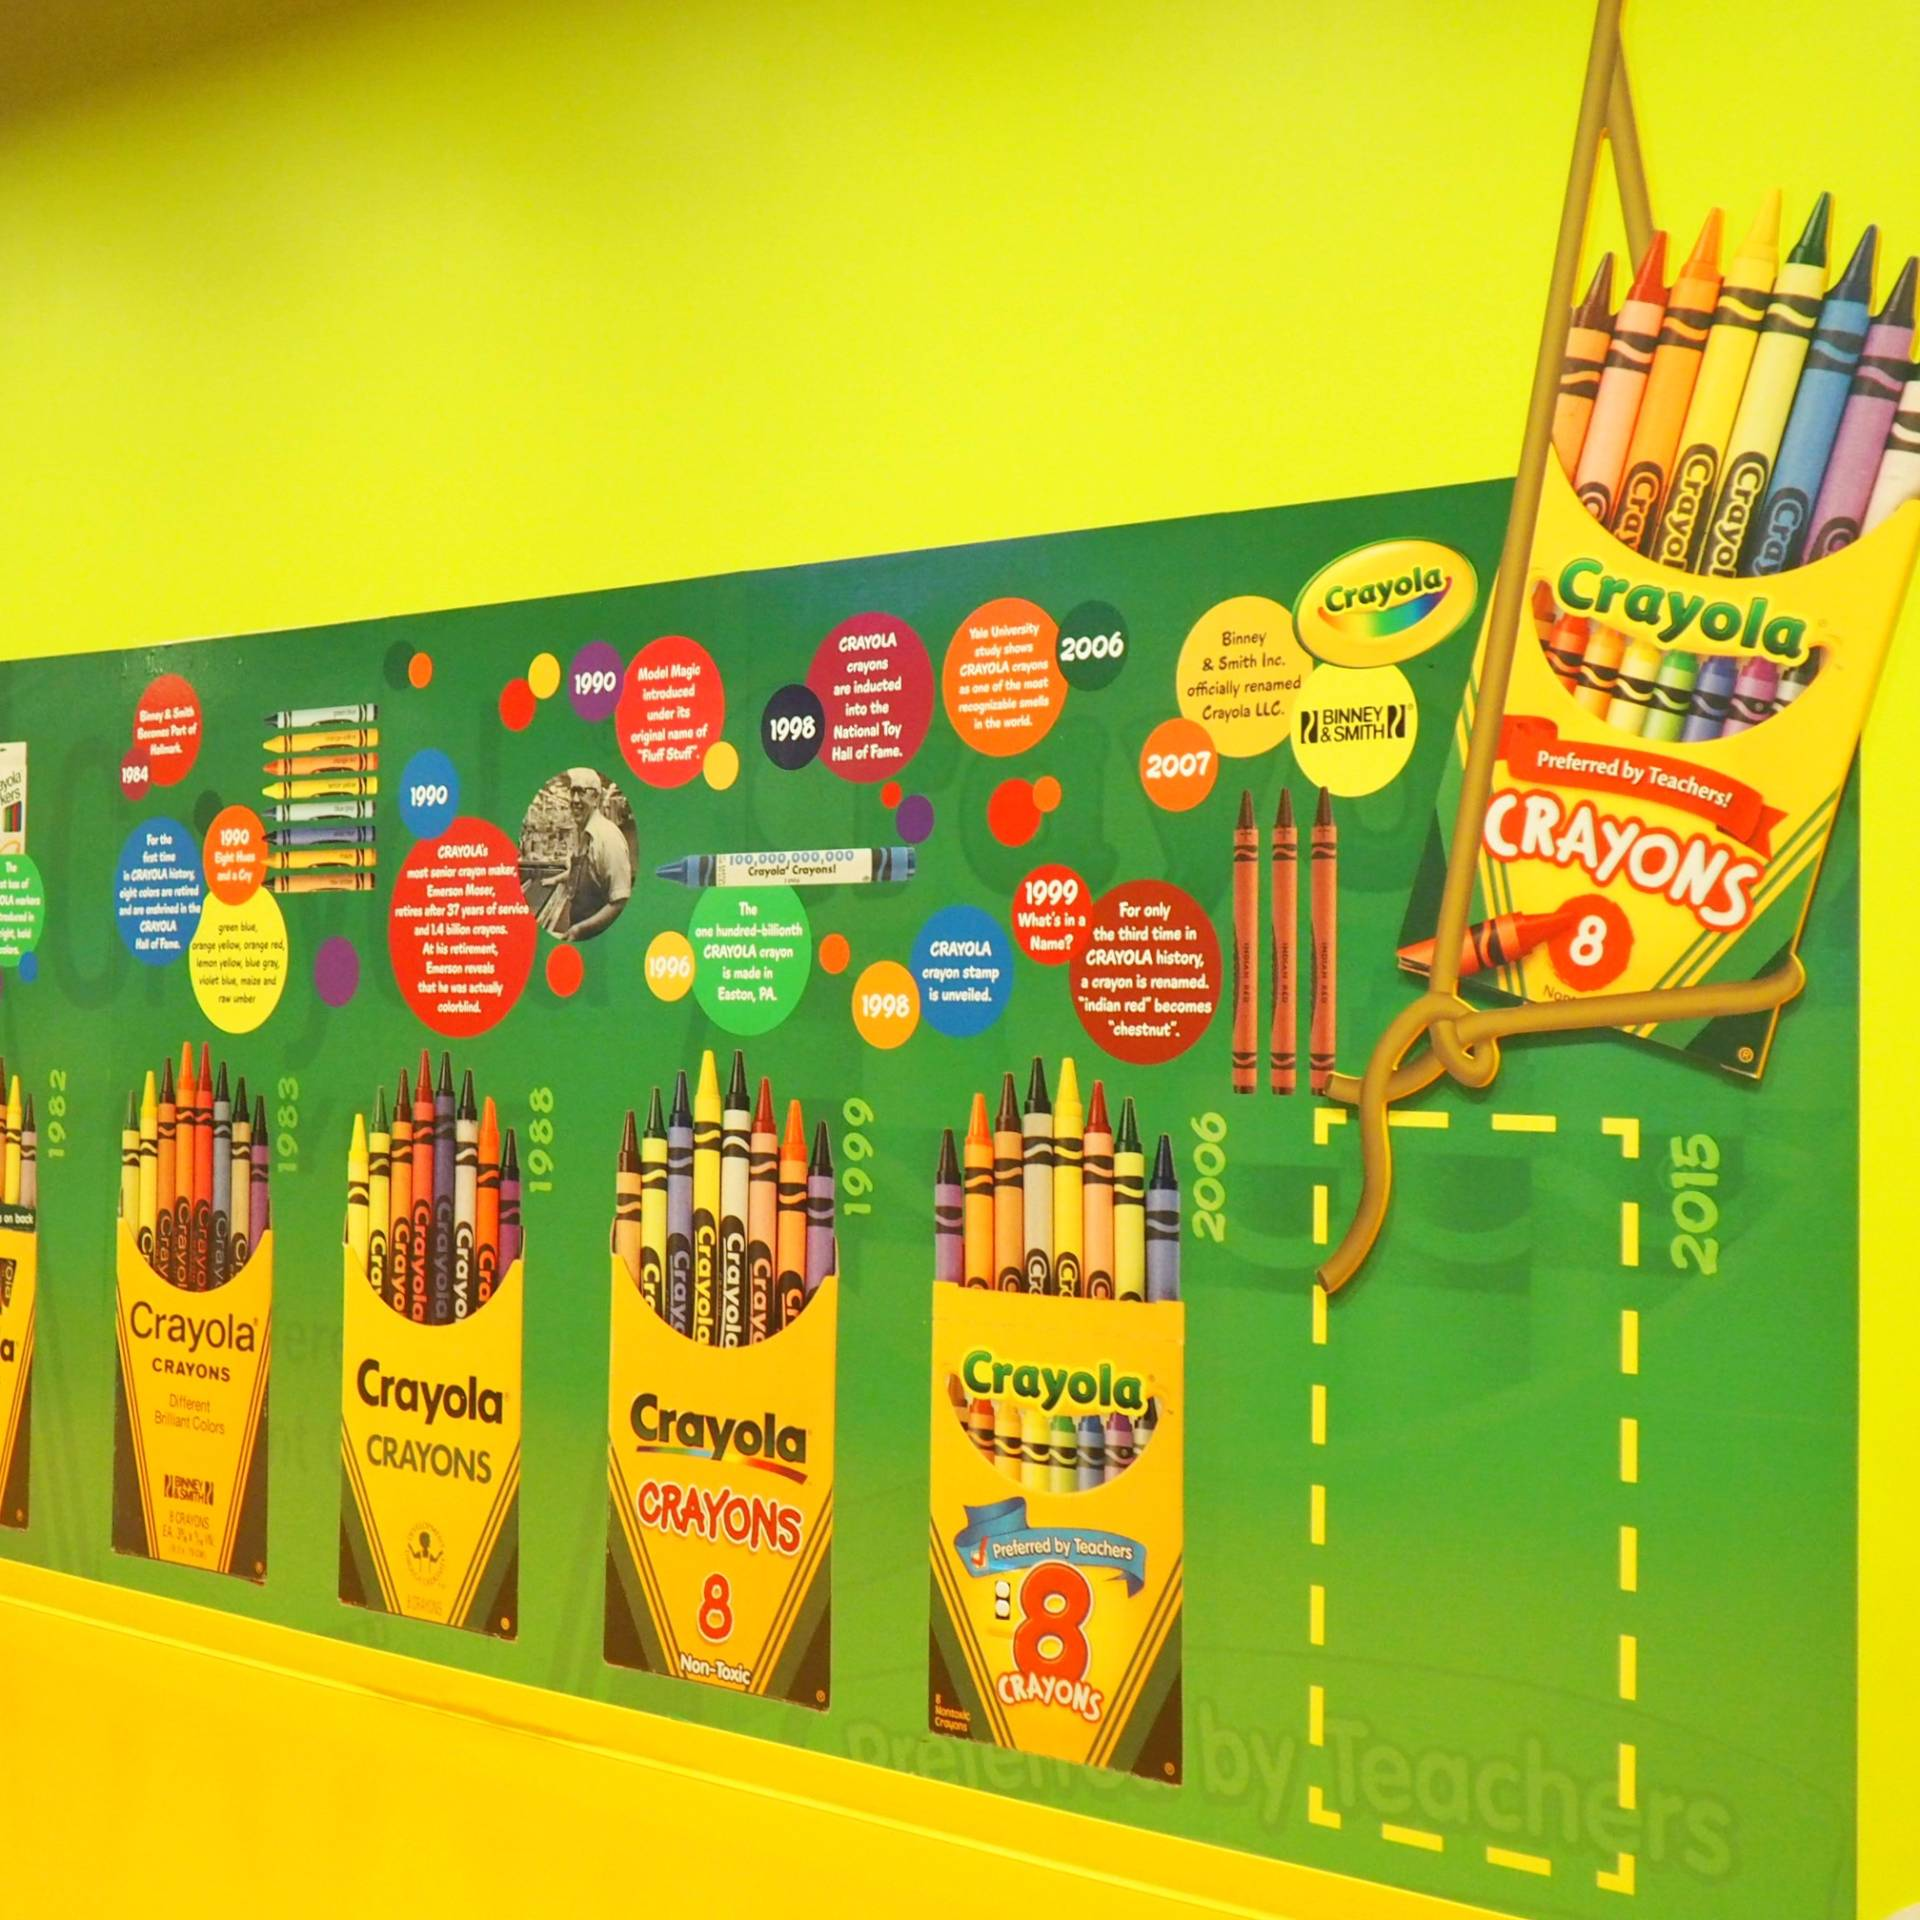 The-Crayola-Experience-Florida-Review